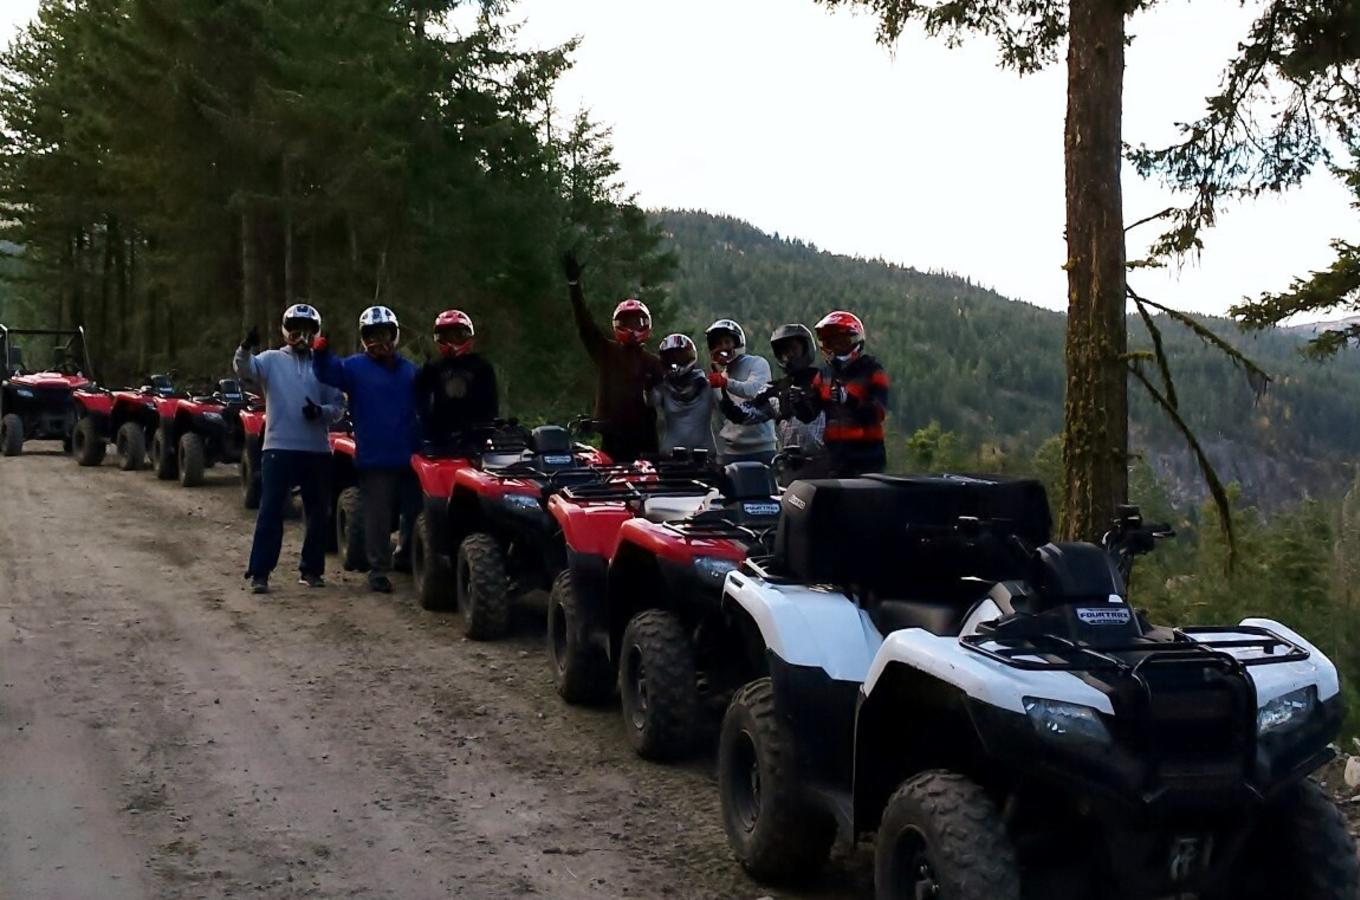 Okanagan ATV Tours having fun in the fall